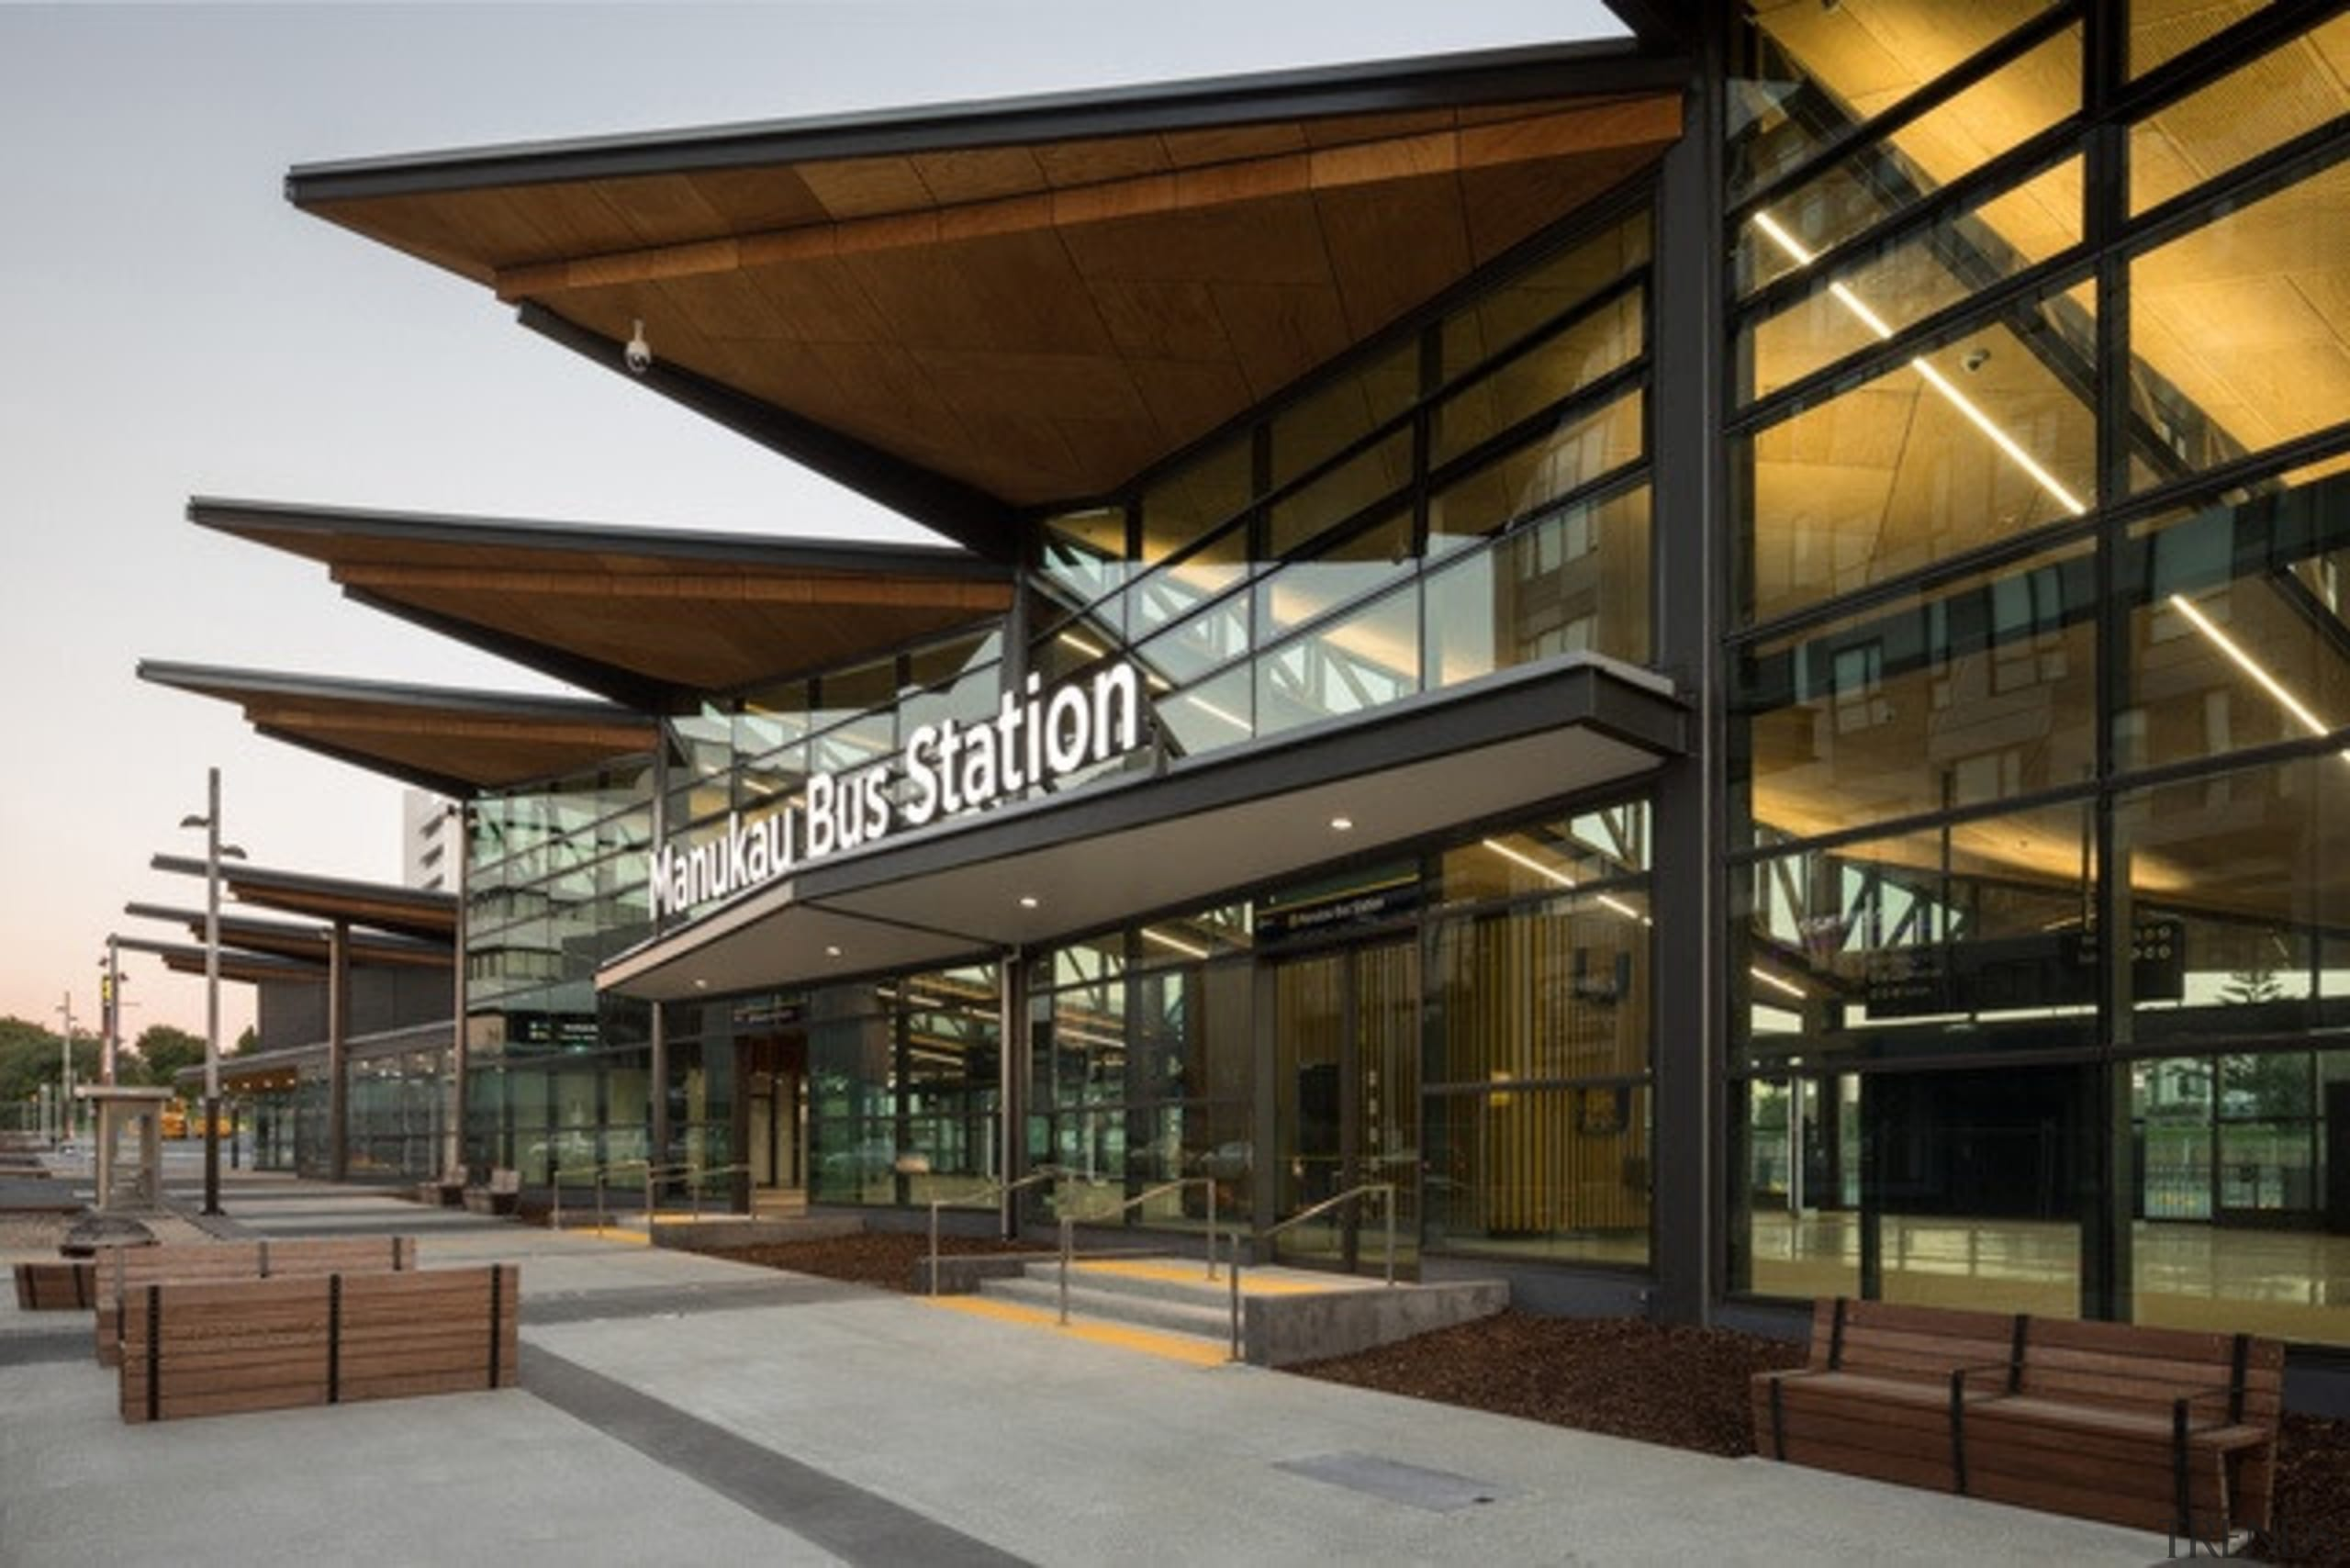 Manukau Bus Station (Auckland) by BecaArchitects – architecture, condominium, mixed use, real estate, brown